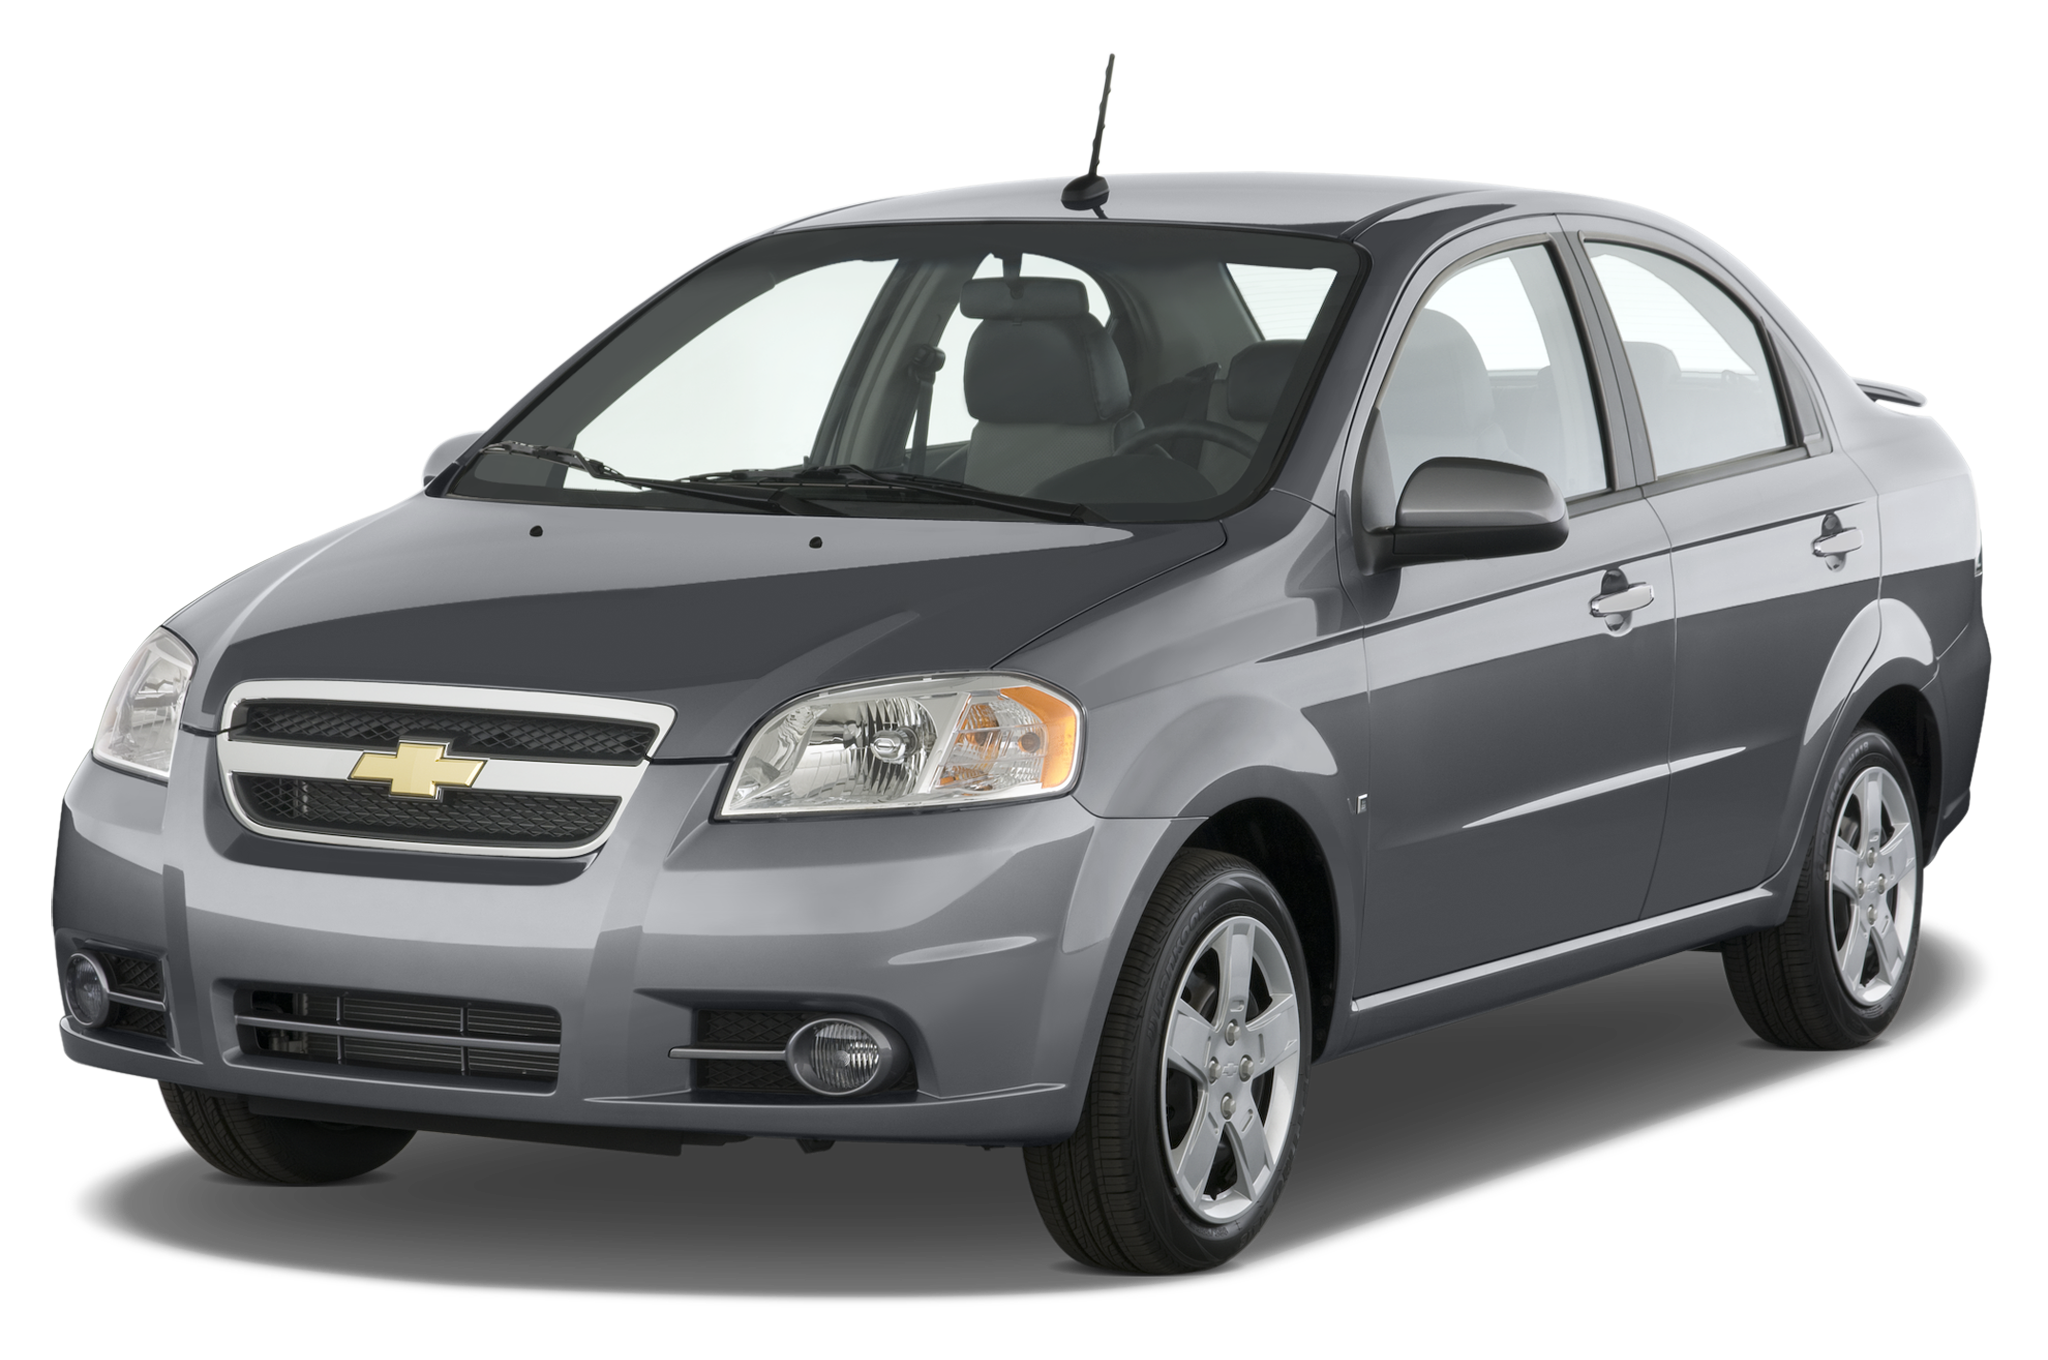 pin used under more chevrolet website explore cars chevy and